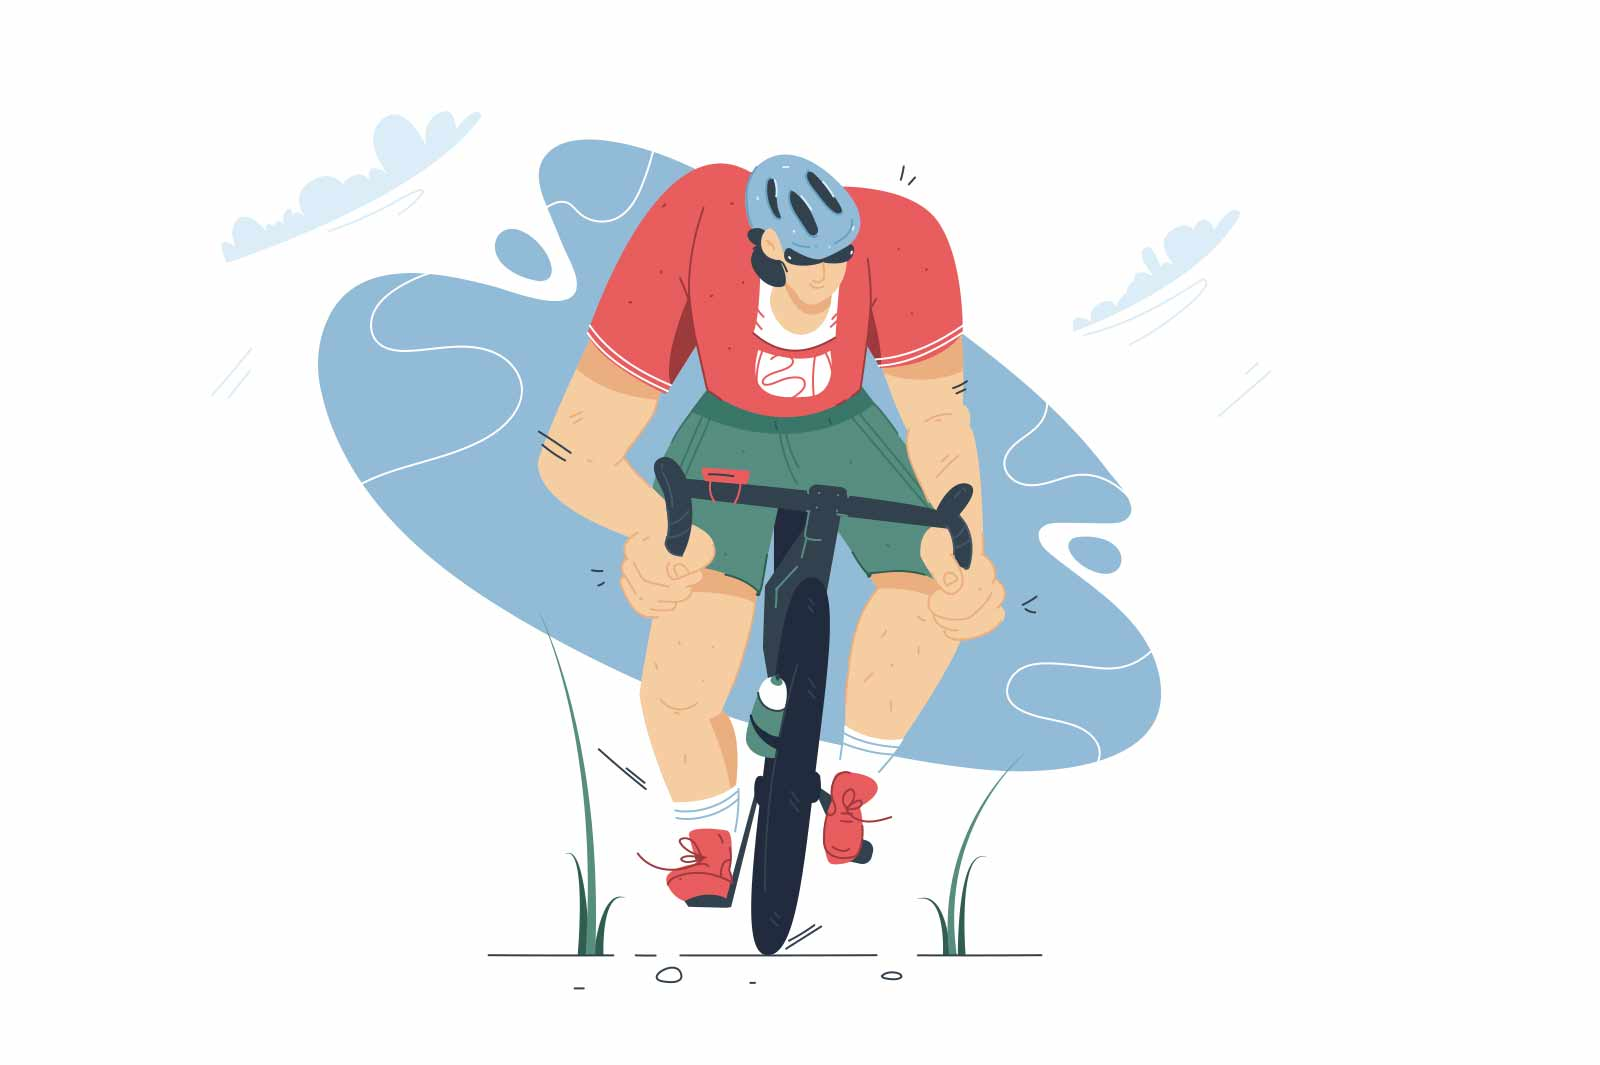 Mountain bike cycling in the forest vector illustration. Cyclist in helmet riding on road flat style design. Extreme sport concept